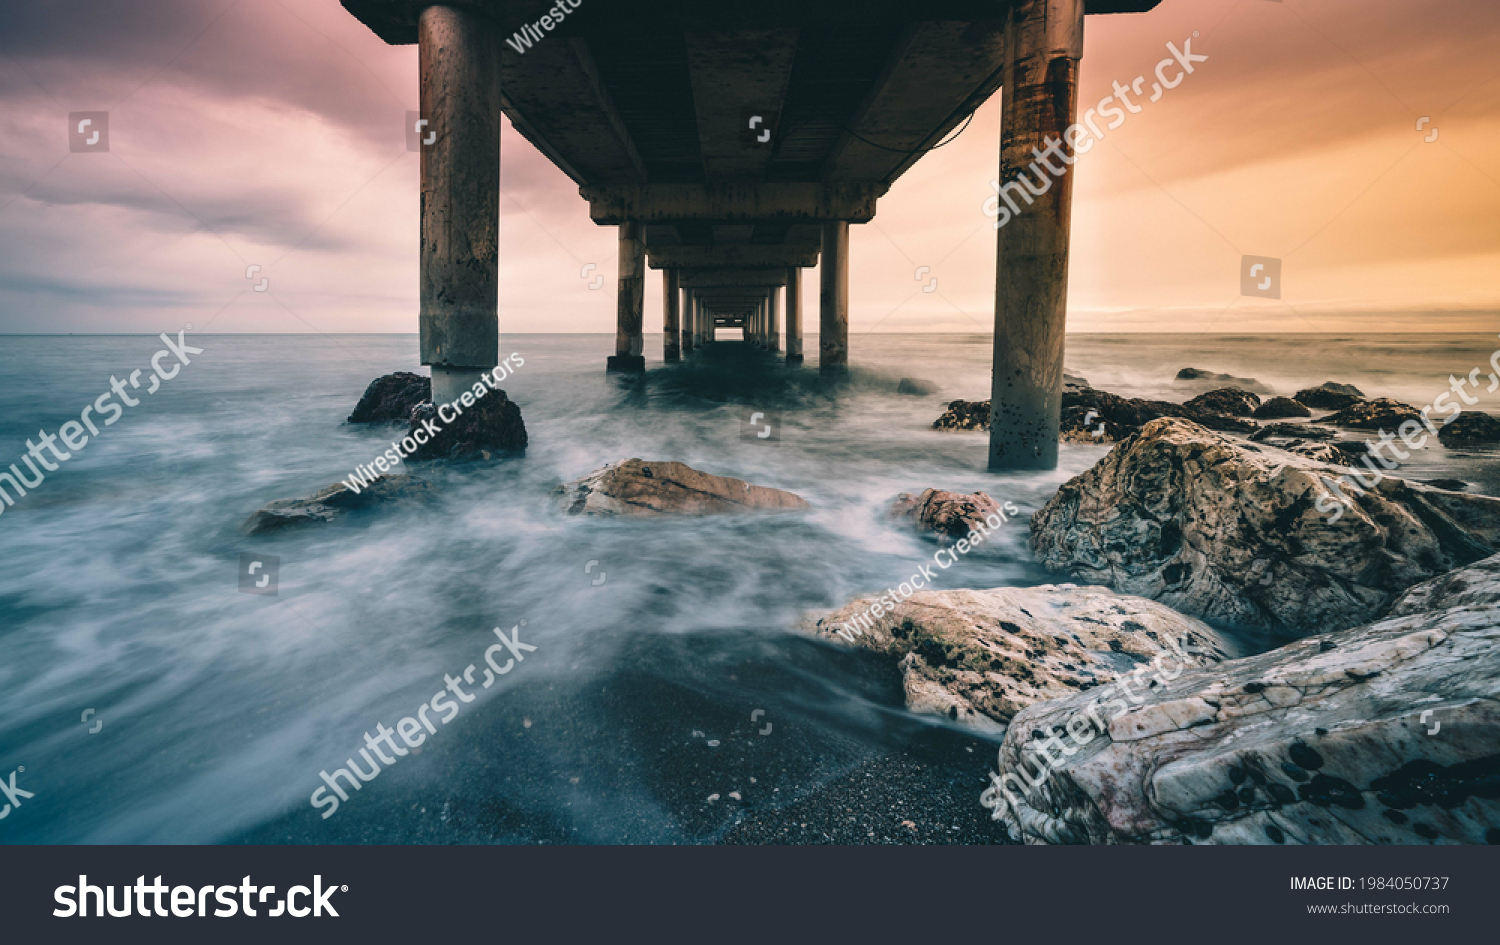 A bottom view of a rocky coast boarding an old wooden pier during a dramatic sunset #1984050737